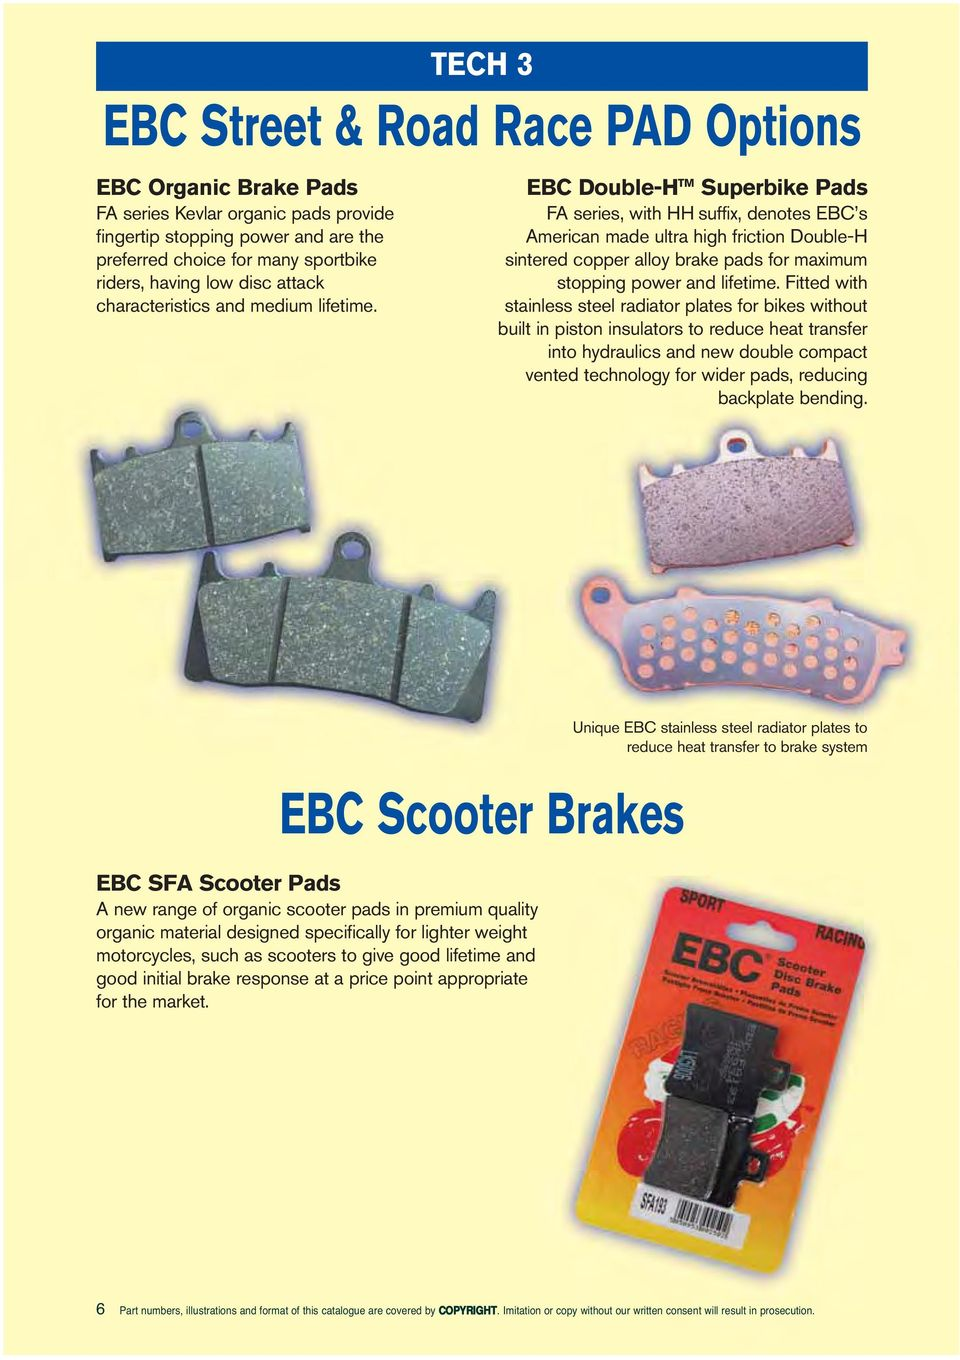 EBC DoubleH TM Superbike Pads FA series, with HH suffix, denotes EBC s American made ultra high friction DoubleH sintered copper alloy brake pads for maximum stopping power and lifetime.